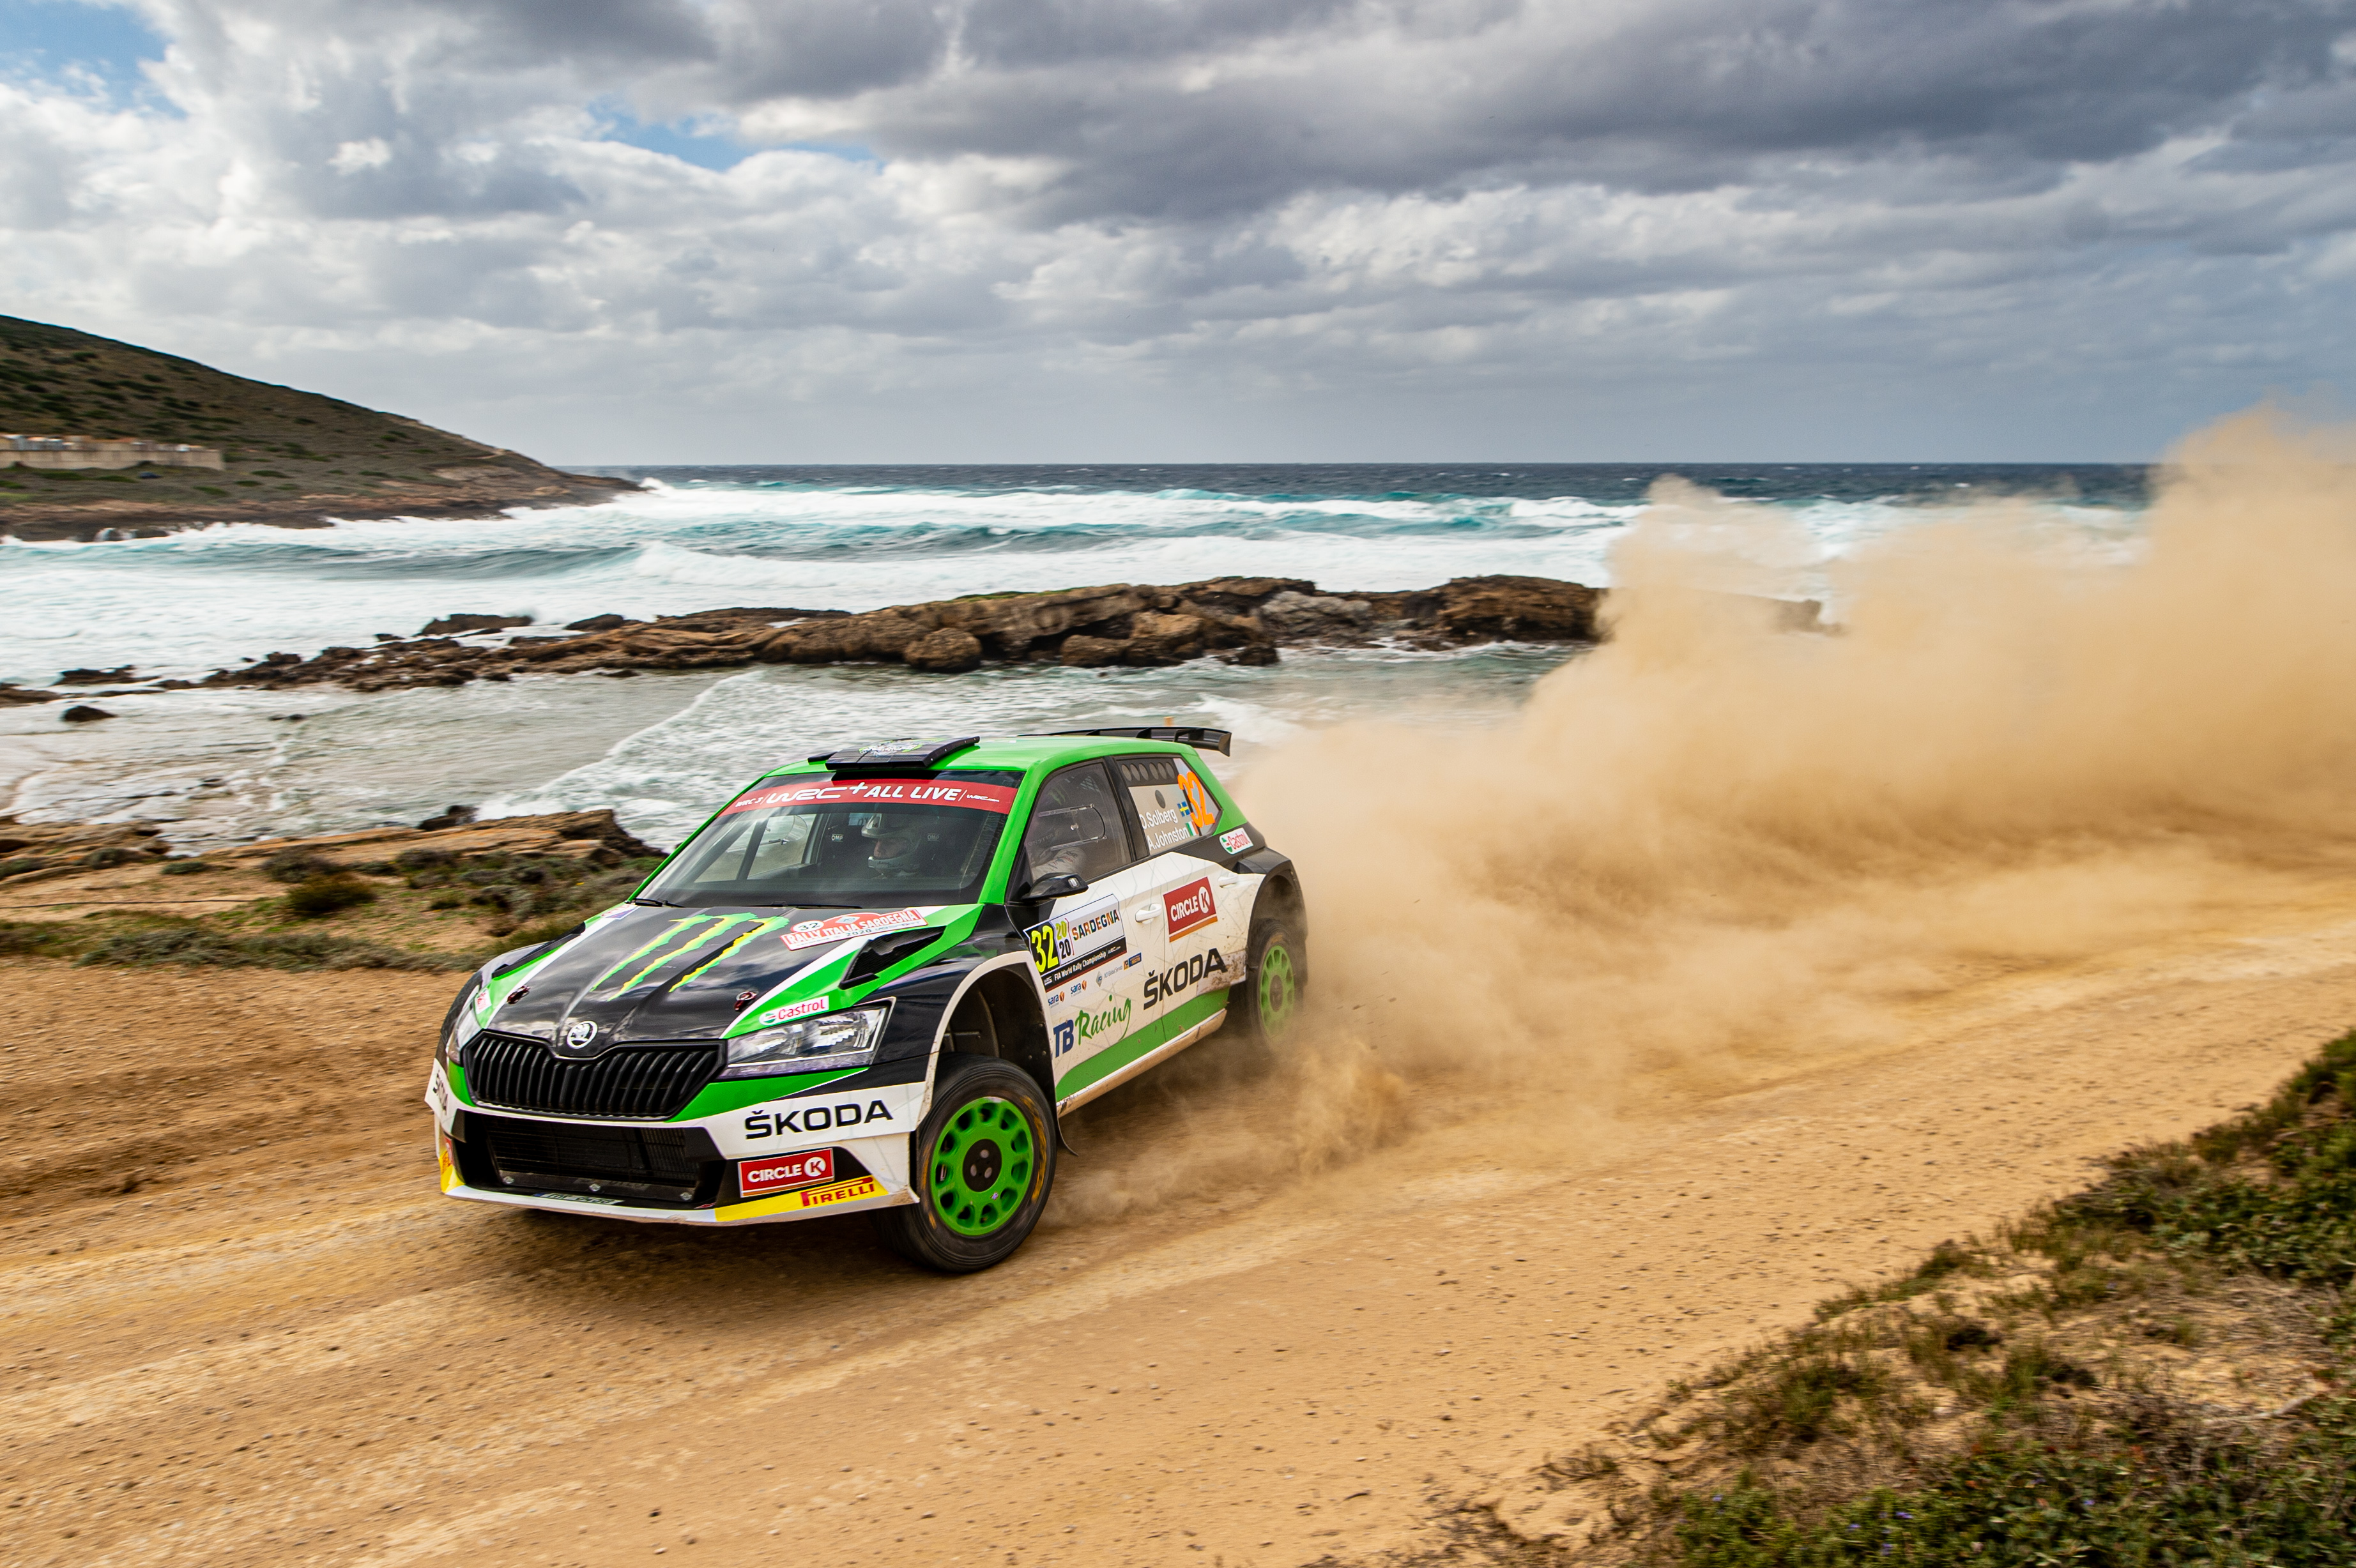 Rally Italia Sardegna: SKODA privateer Pontus Tidemand wins WRC2 and extends overall lead - Image 2